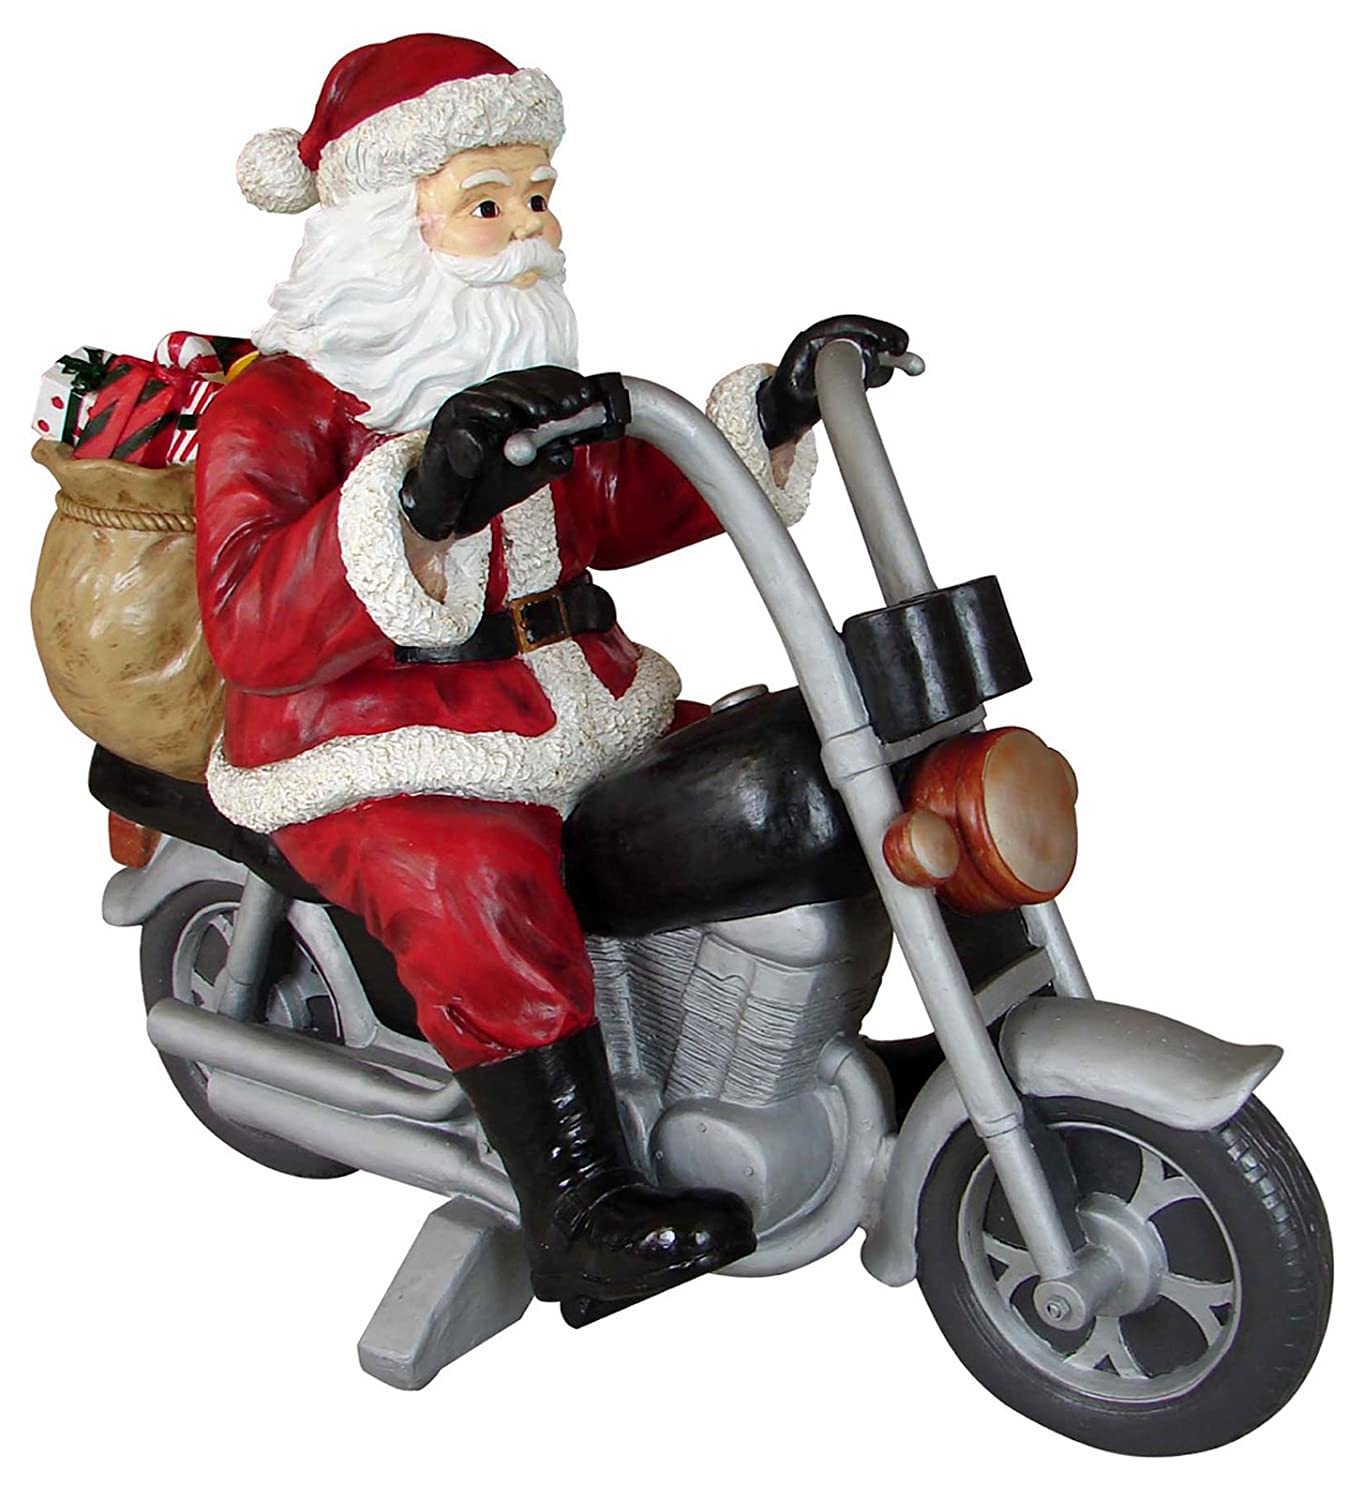 Santa Clause Riding His Motorcycle Outside Christmas Decorations